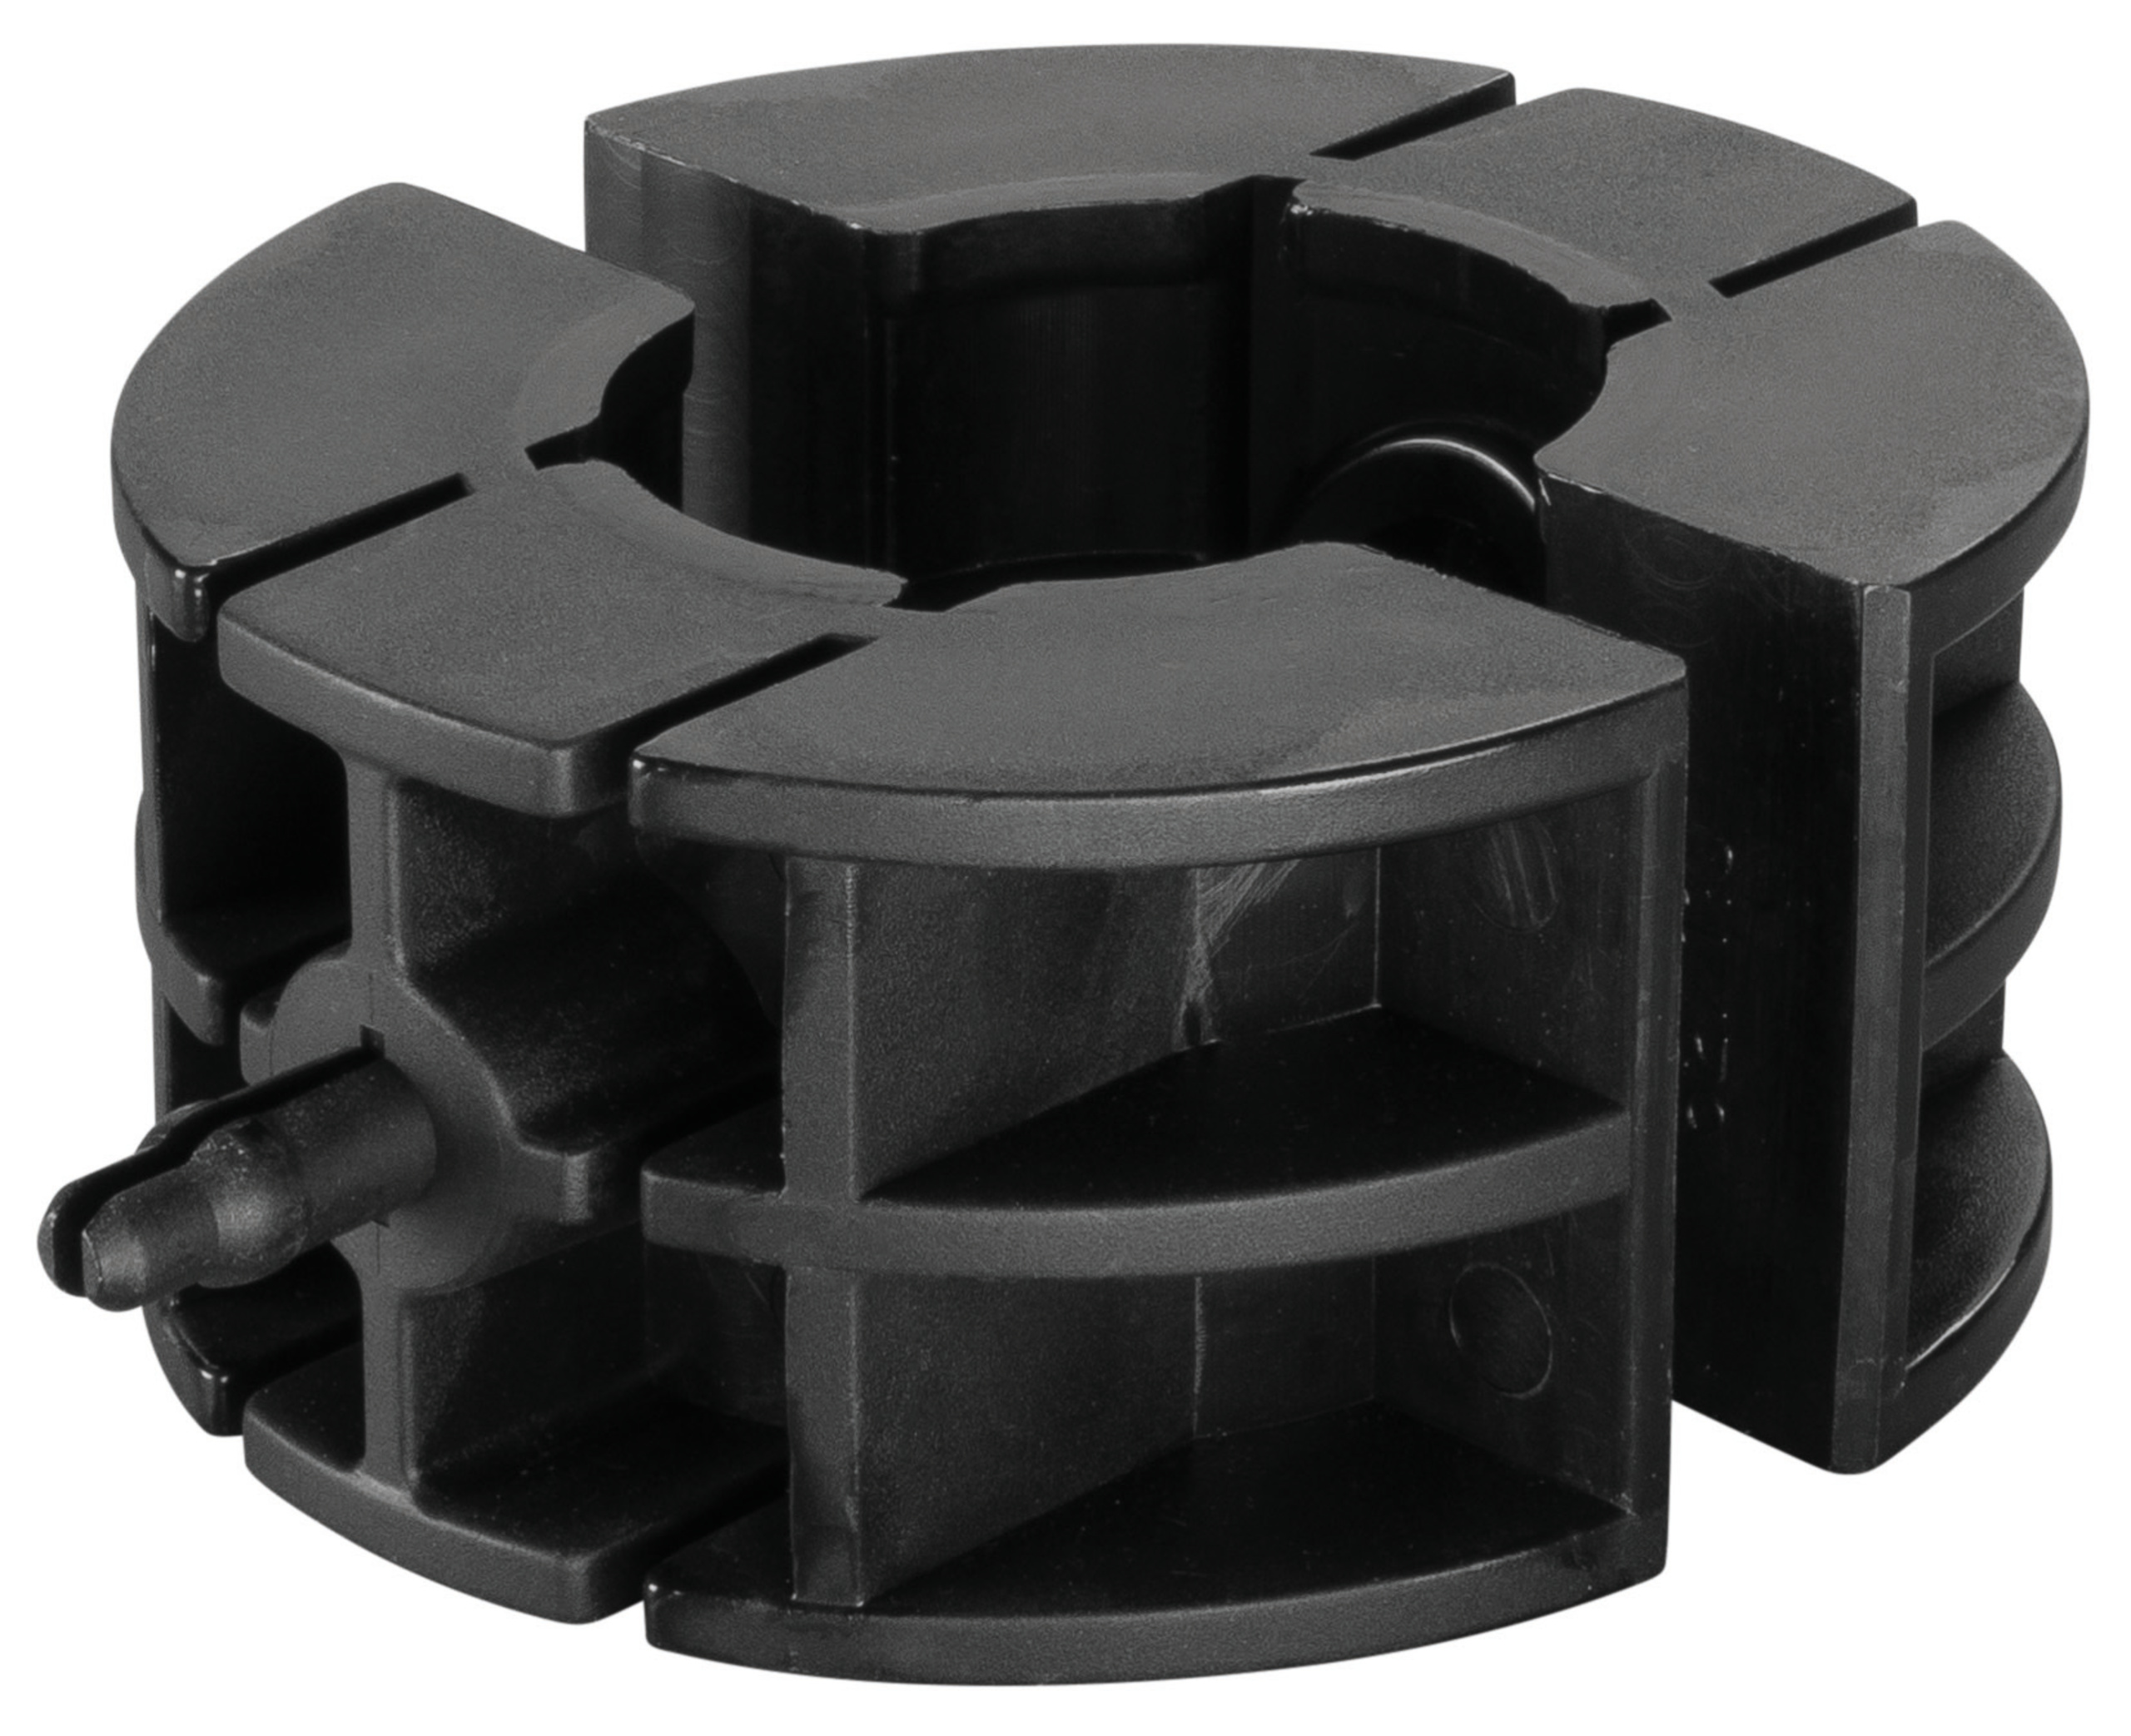 <br/>Clamping insert Ø 52 mm p of 2